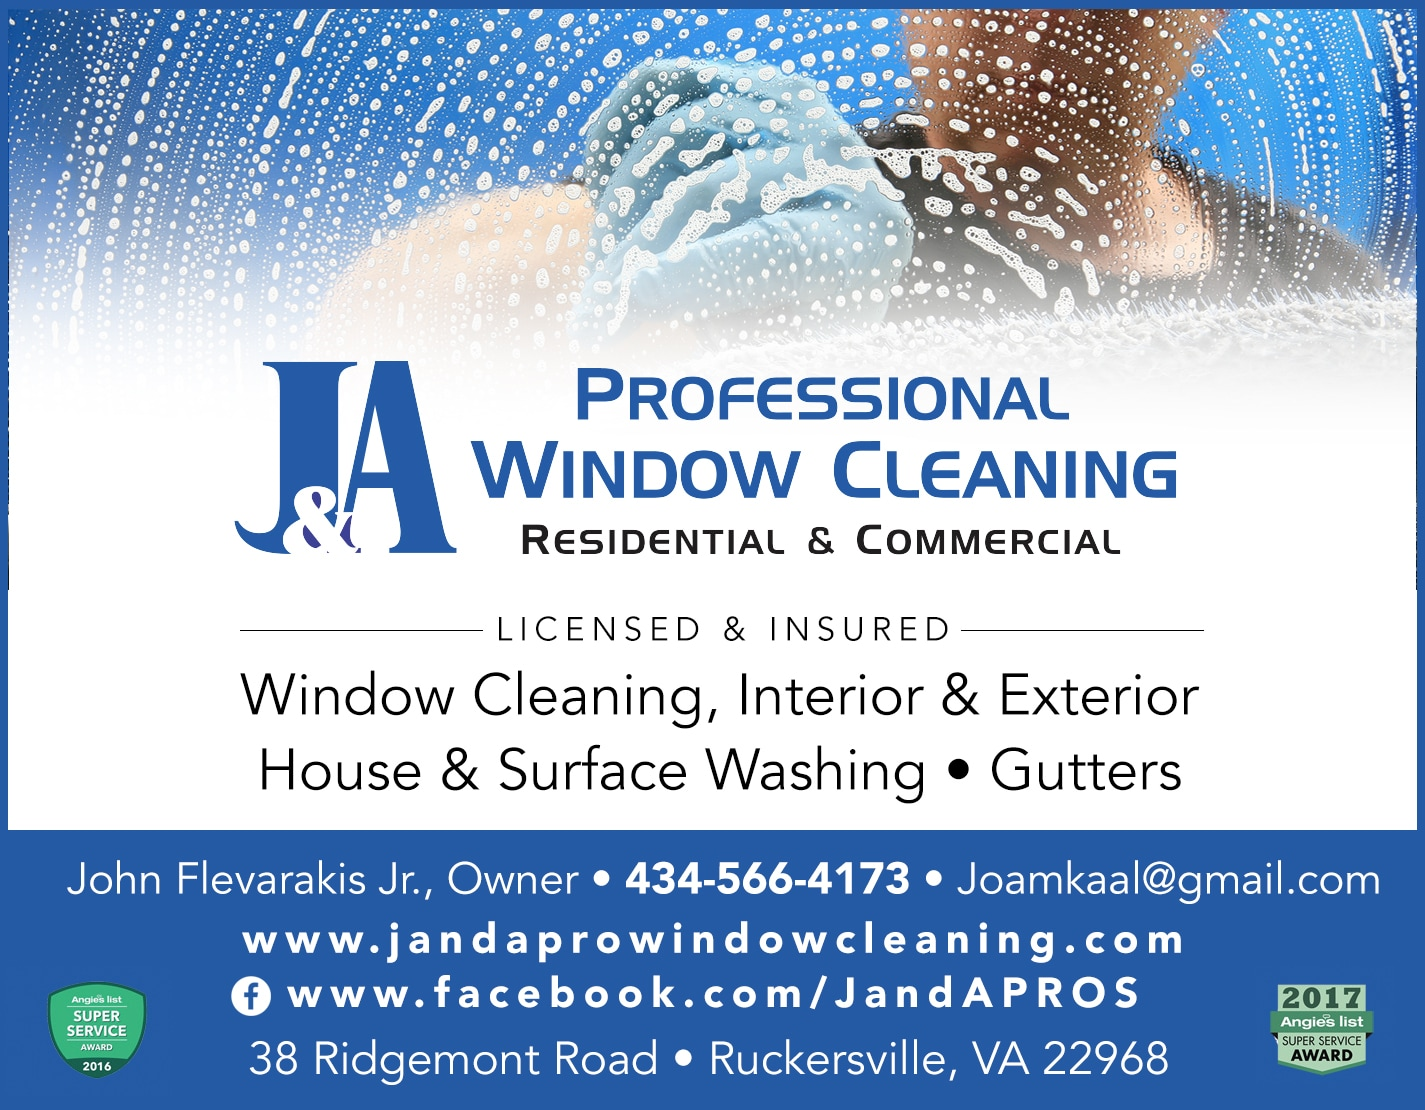 J&A Professional Window Cleaning